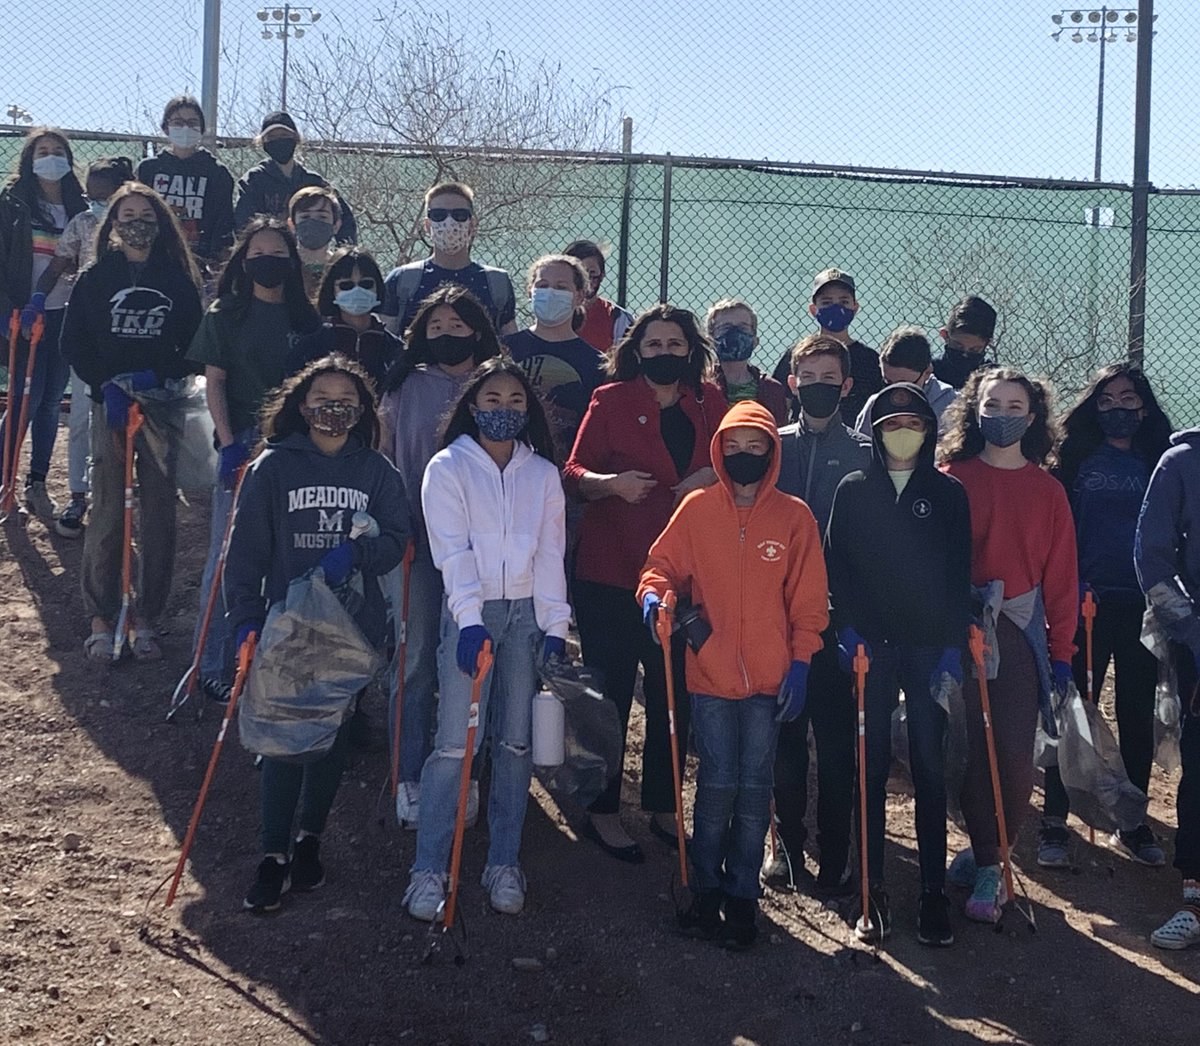 Thank you to @TMSmustangs and @getoutdoorsnv for a great park clean up at Bruce Trent Park!  @cityoflasvegas #lvcouncil #lvccward2 #park #environment #ecofriendly #landscape #volunteers #waste #nature #clean #cleanup #trash #community #giveback #makeadifference #support #trees